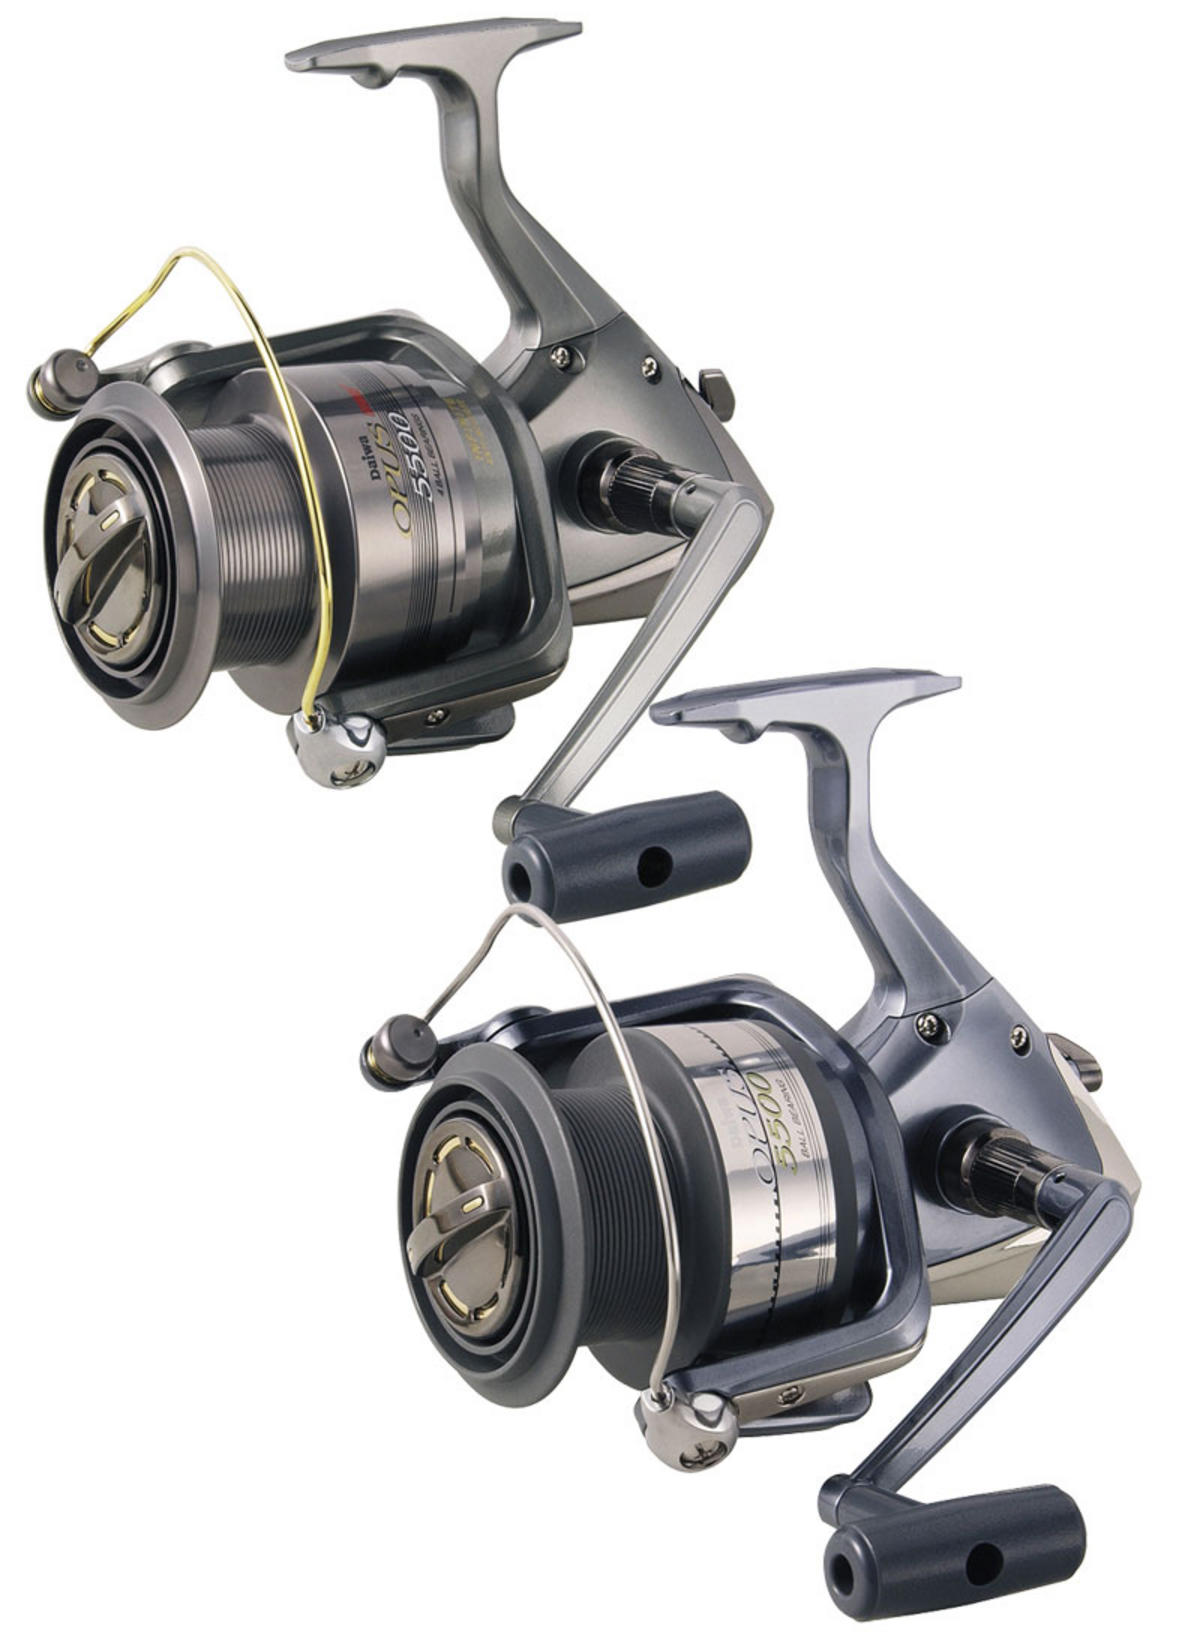 Daiwa opus 6000 reel model no op6000 fishing reel daiwa for Daiwa fishing reels